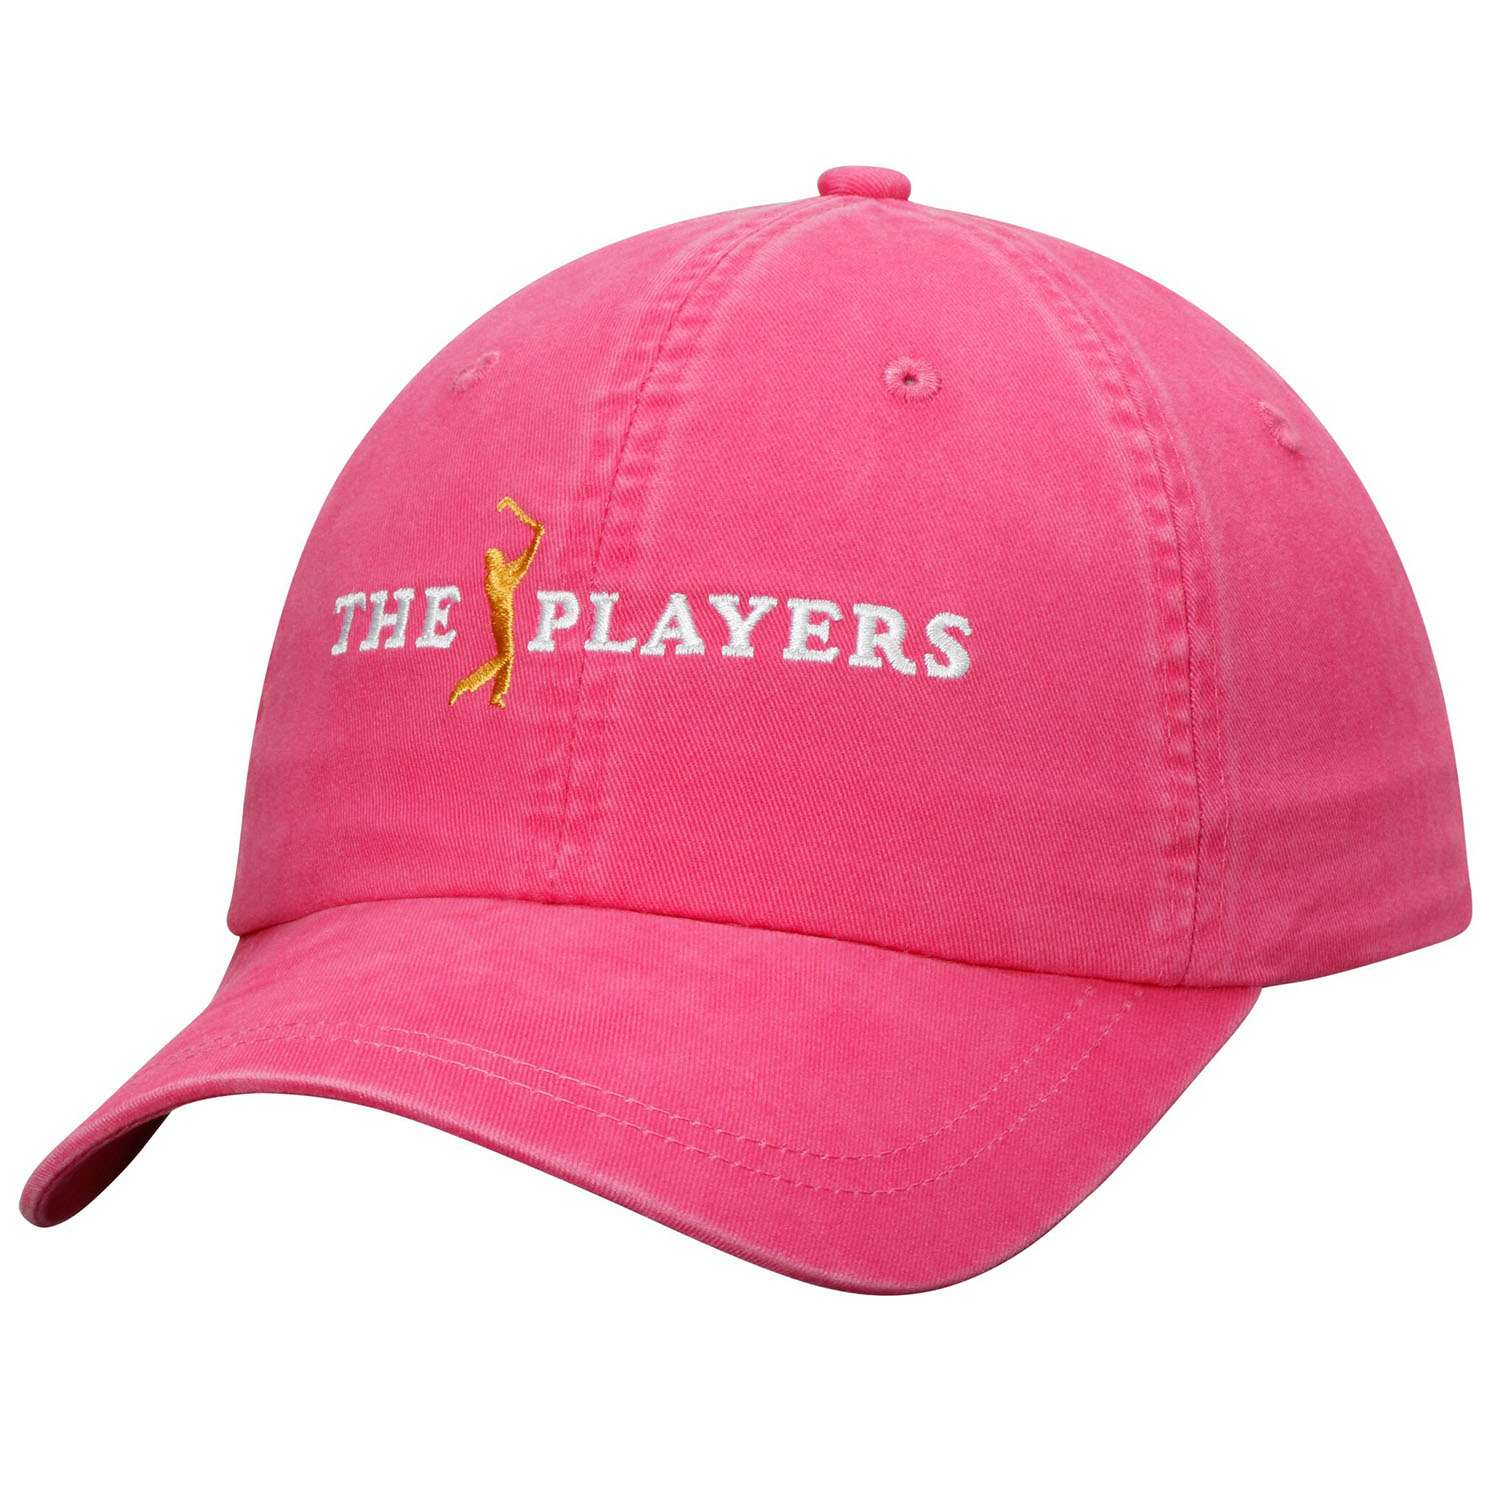 Hat: Golf - The Players Pink Solid Peach Twill (Women) Photo